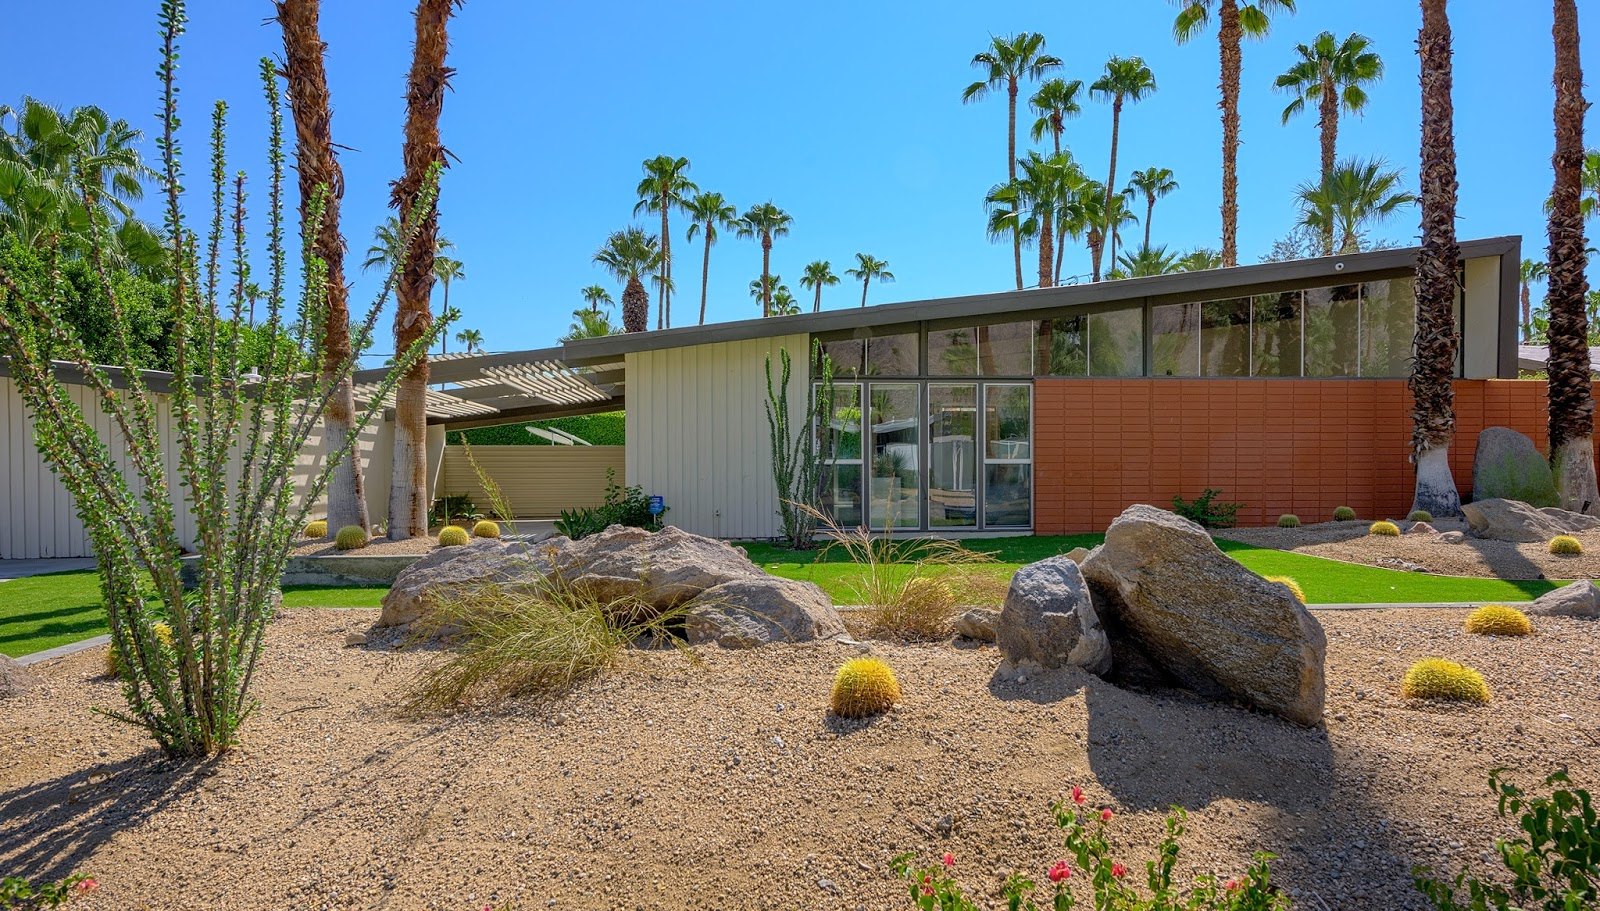 Color forte color design mid century modern project for Modern home decor palm springs